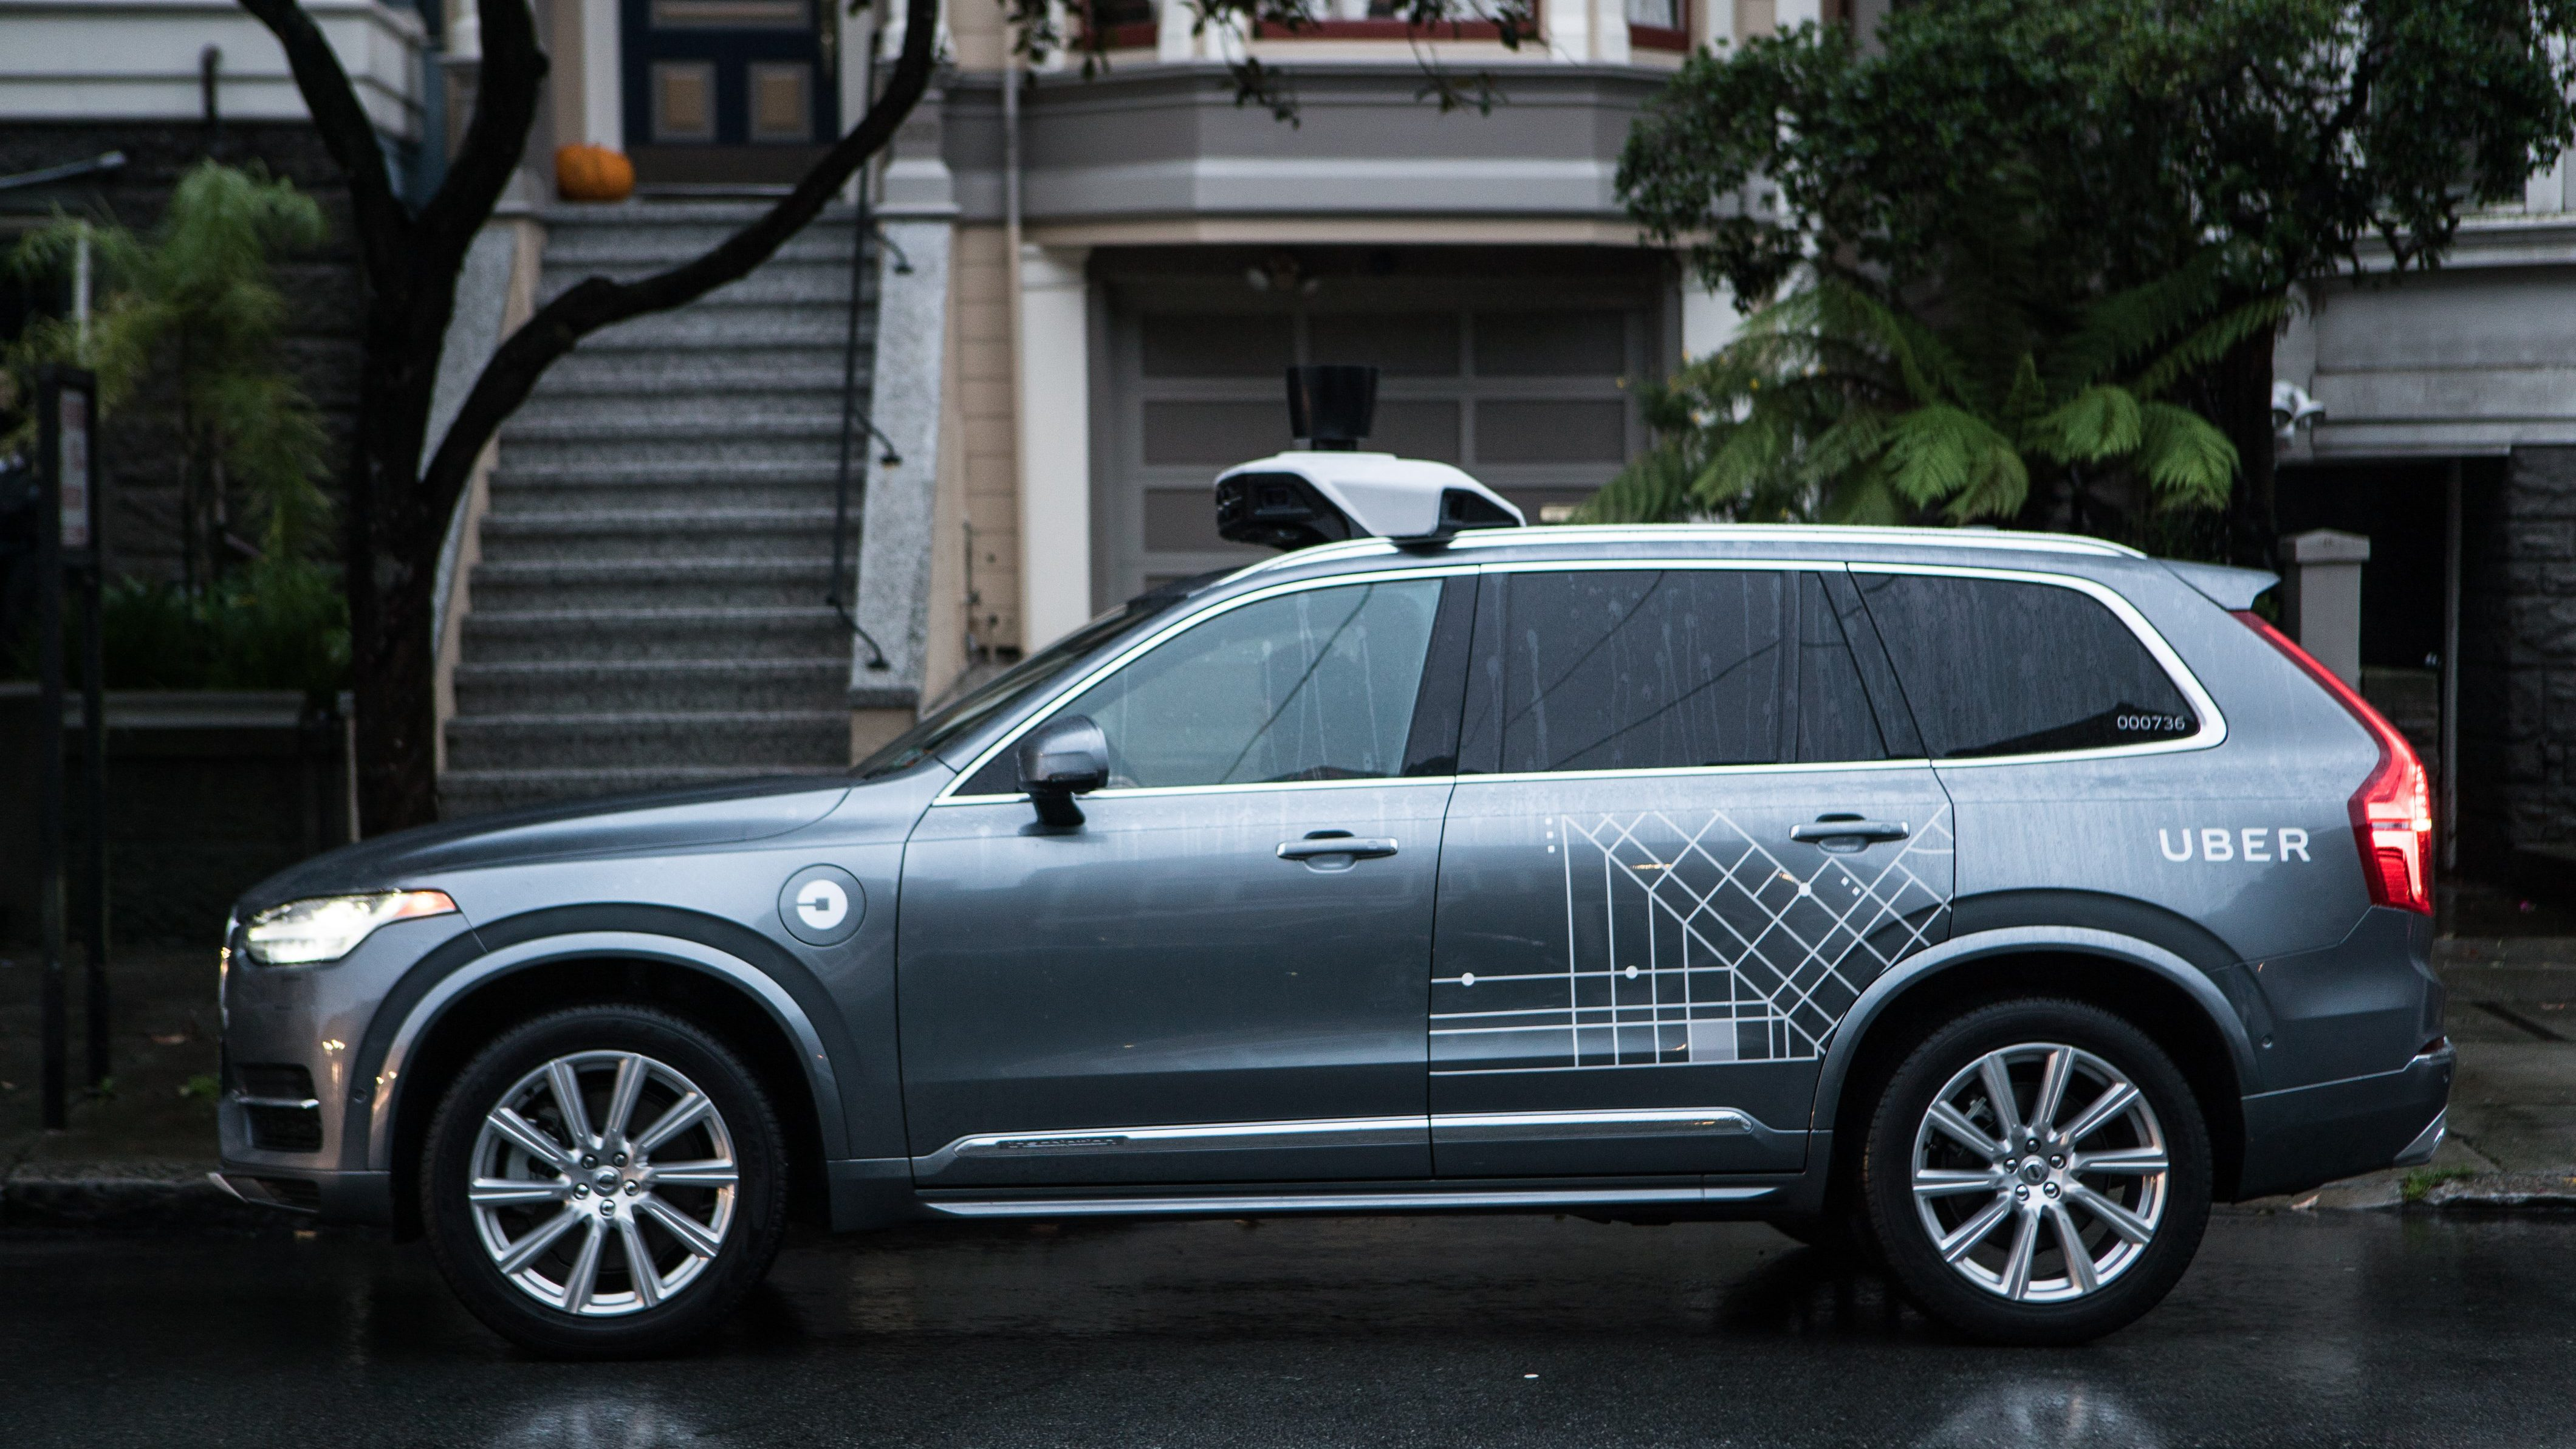 Uber Is Buying 1 Billion Worth Of Self Driving Xc90 Cars